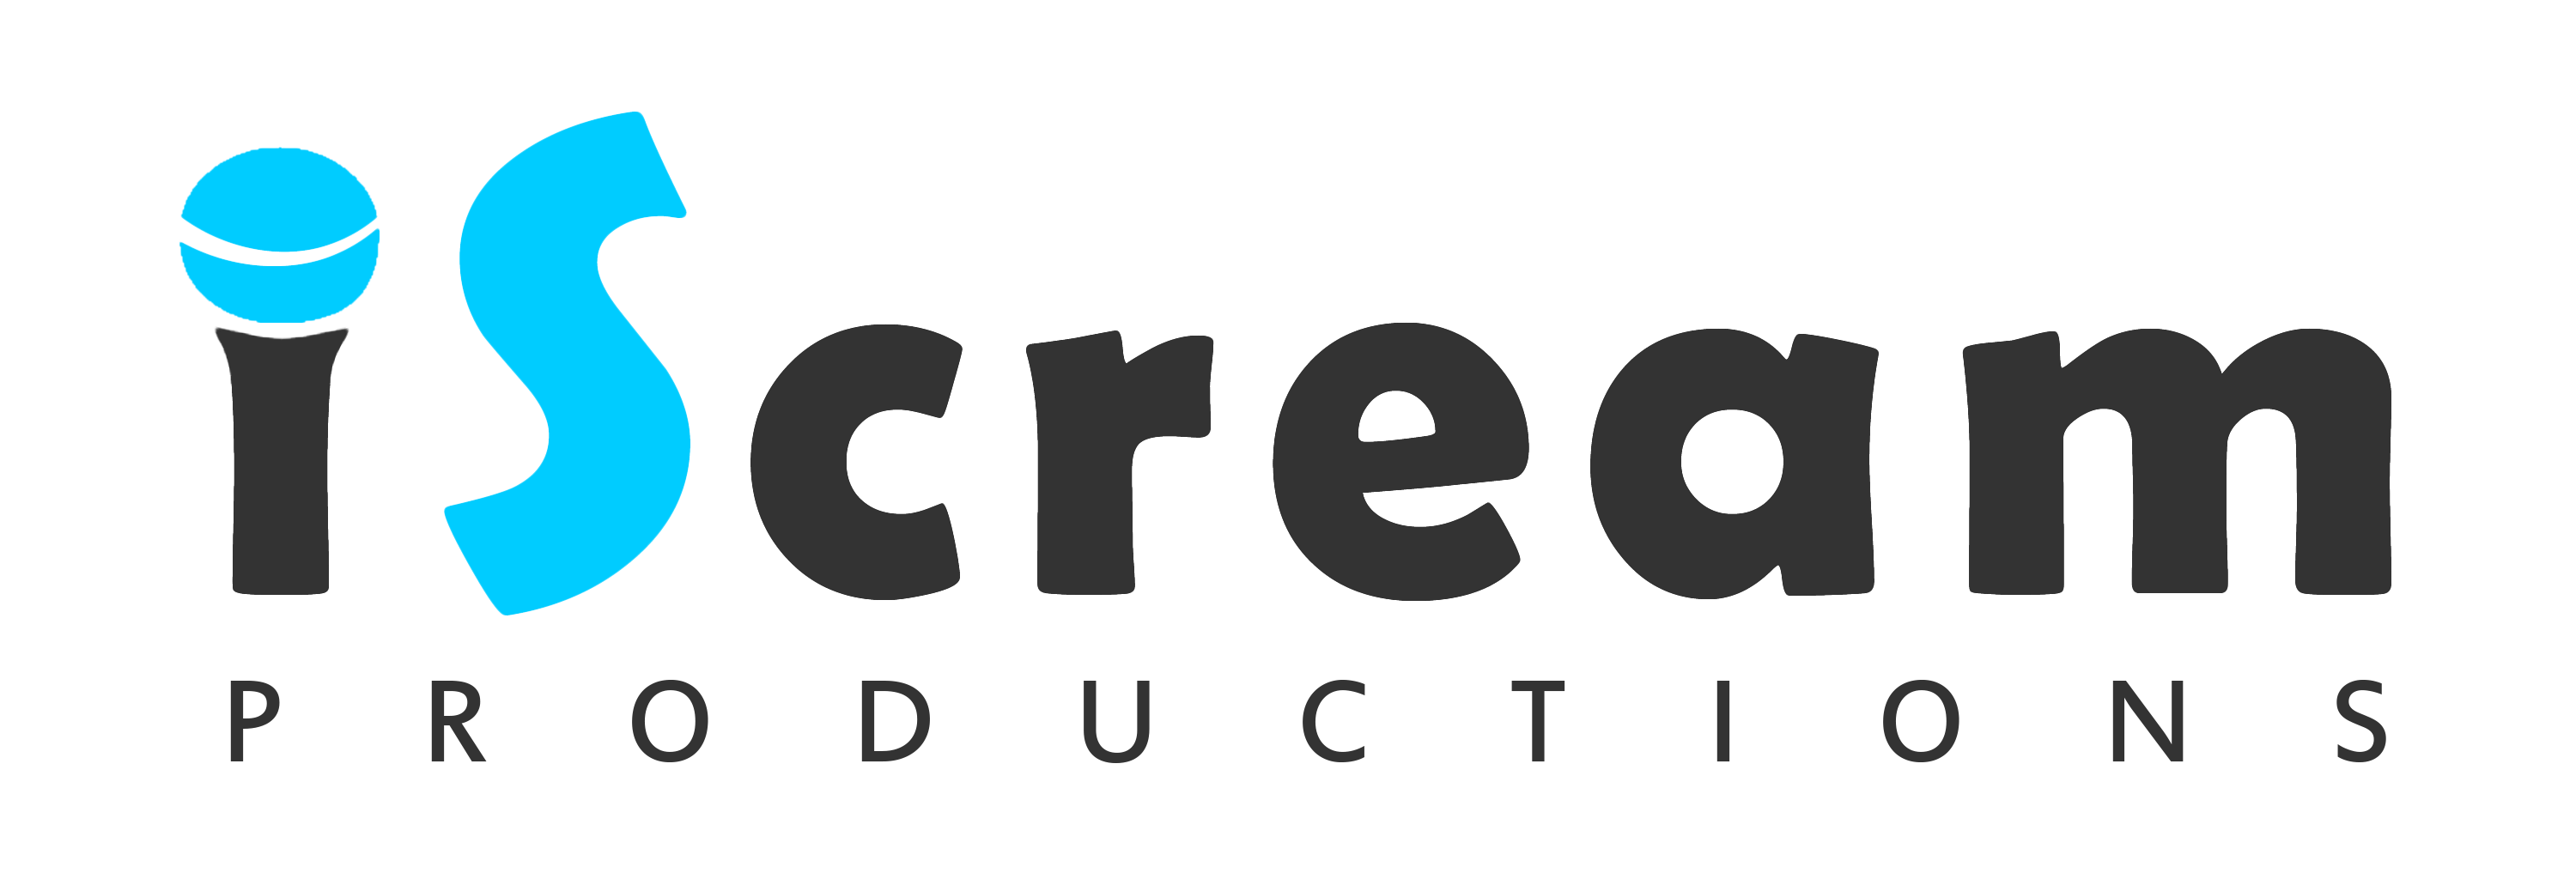 iScream Productions